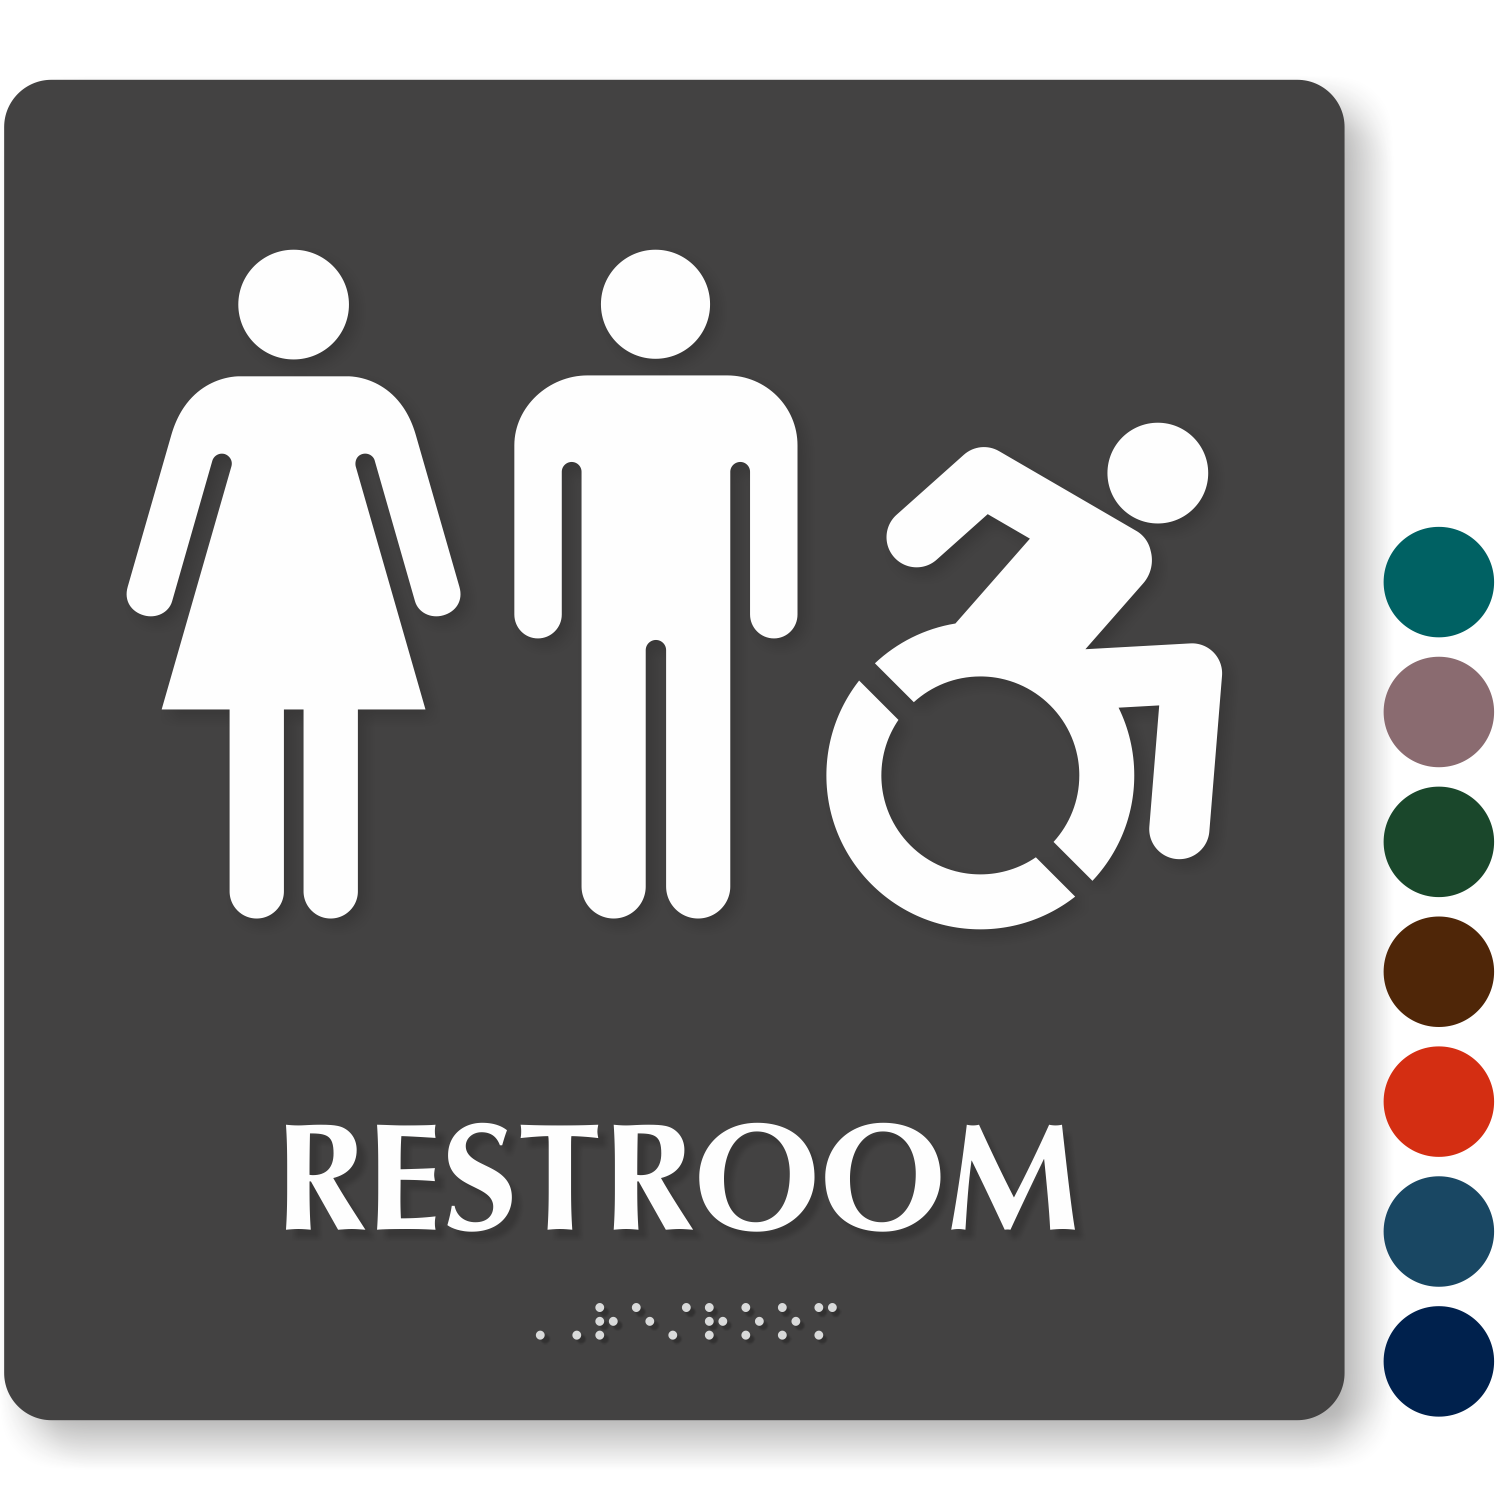 Bathroom Signs Vector Free family restroom signs